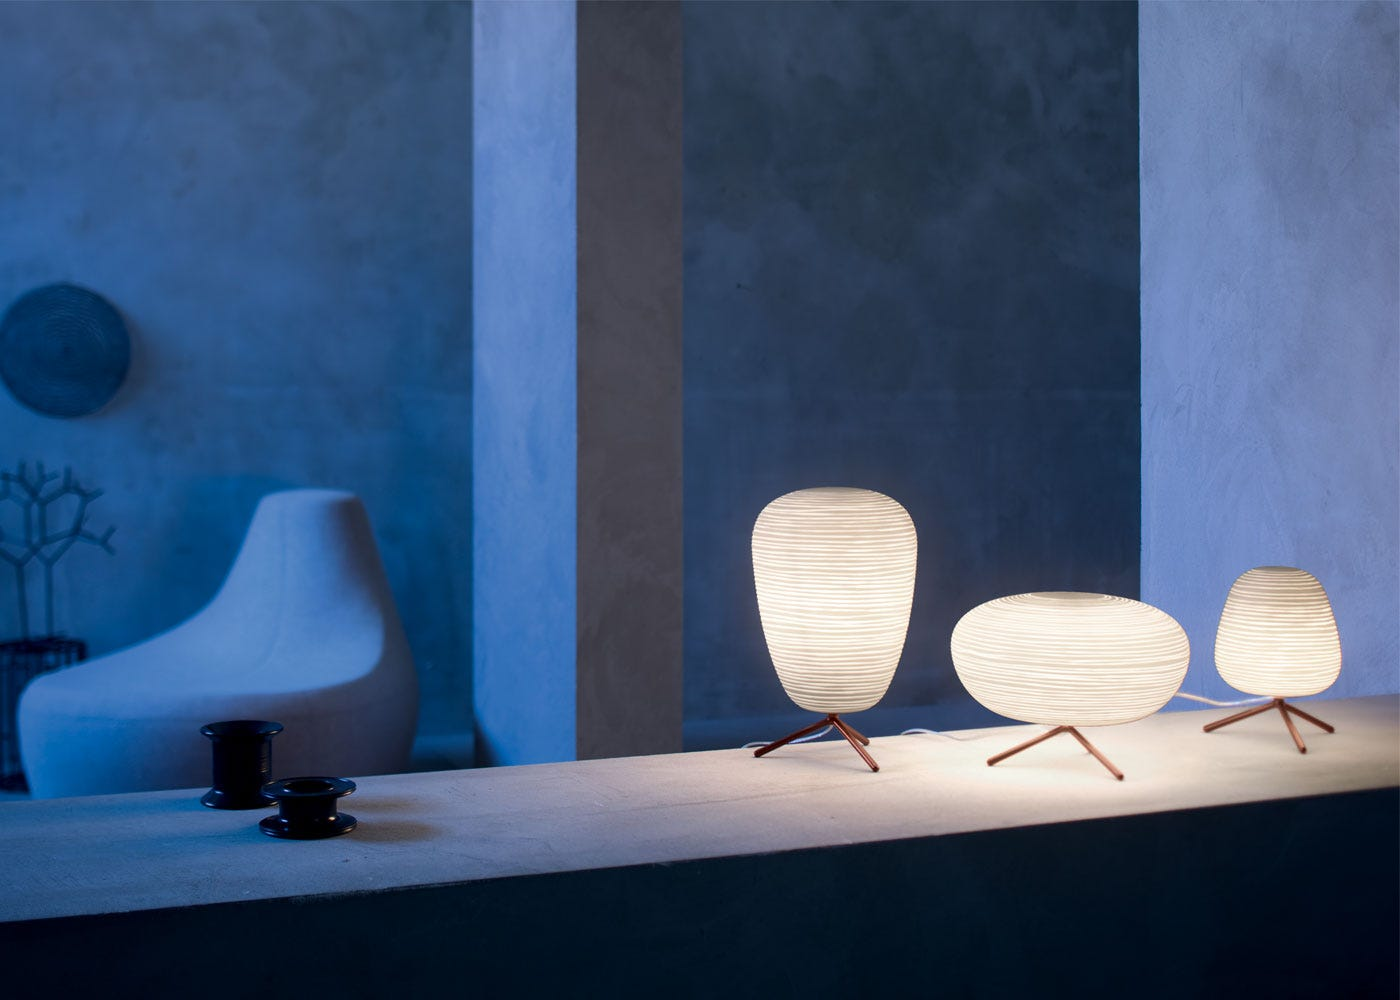 As shown: Ritual table lamp collection.